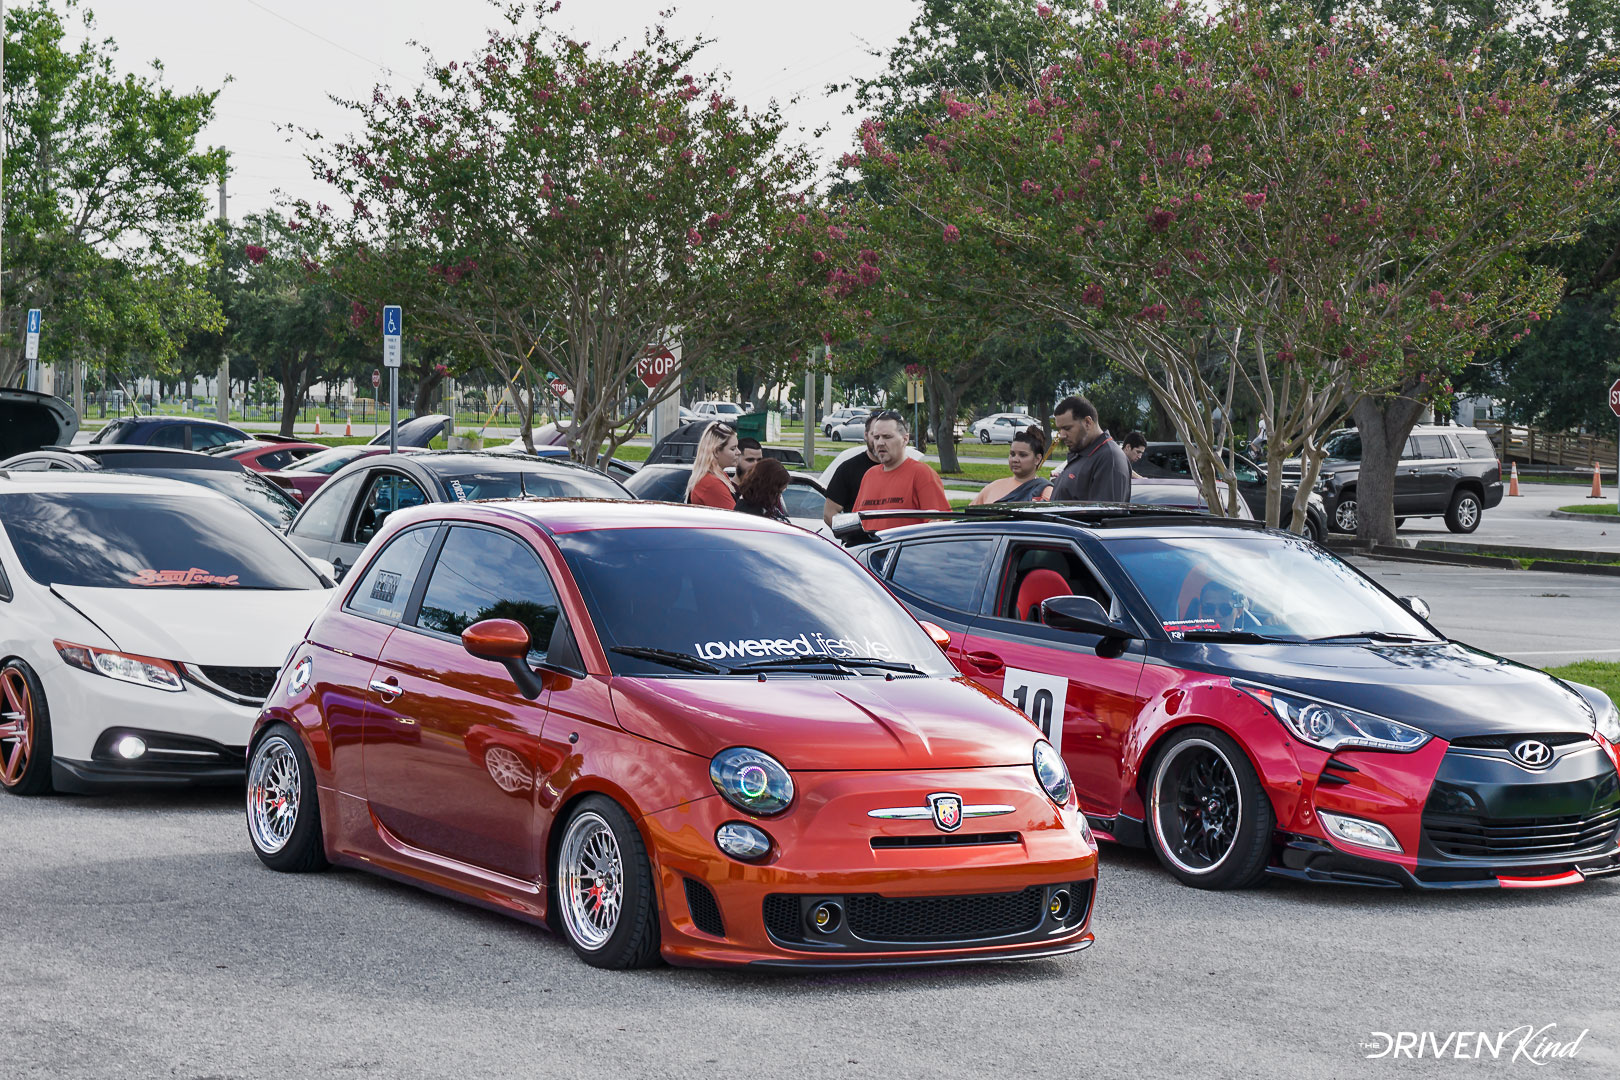 Fiat Abarth Daily Driven Inc. Presents Florida's Finest Melbourne FL Auditorium coverage by The Driven Kind